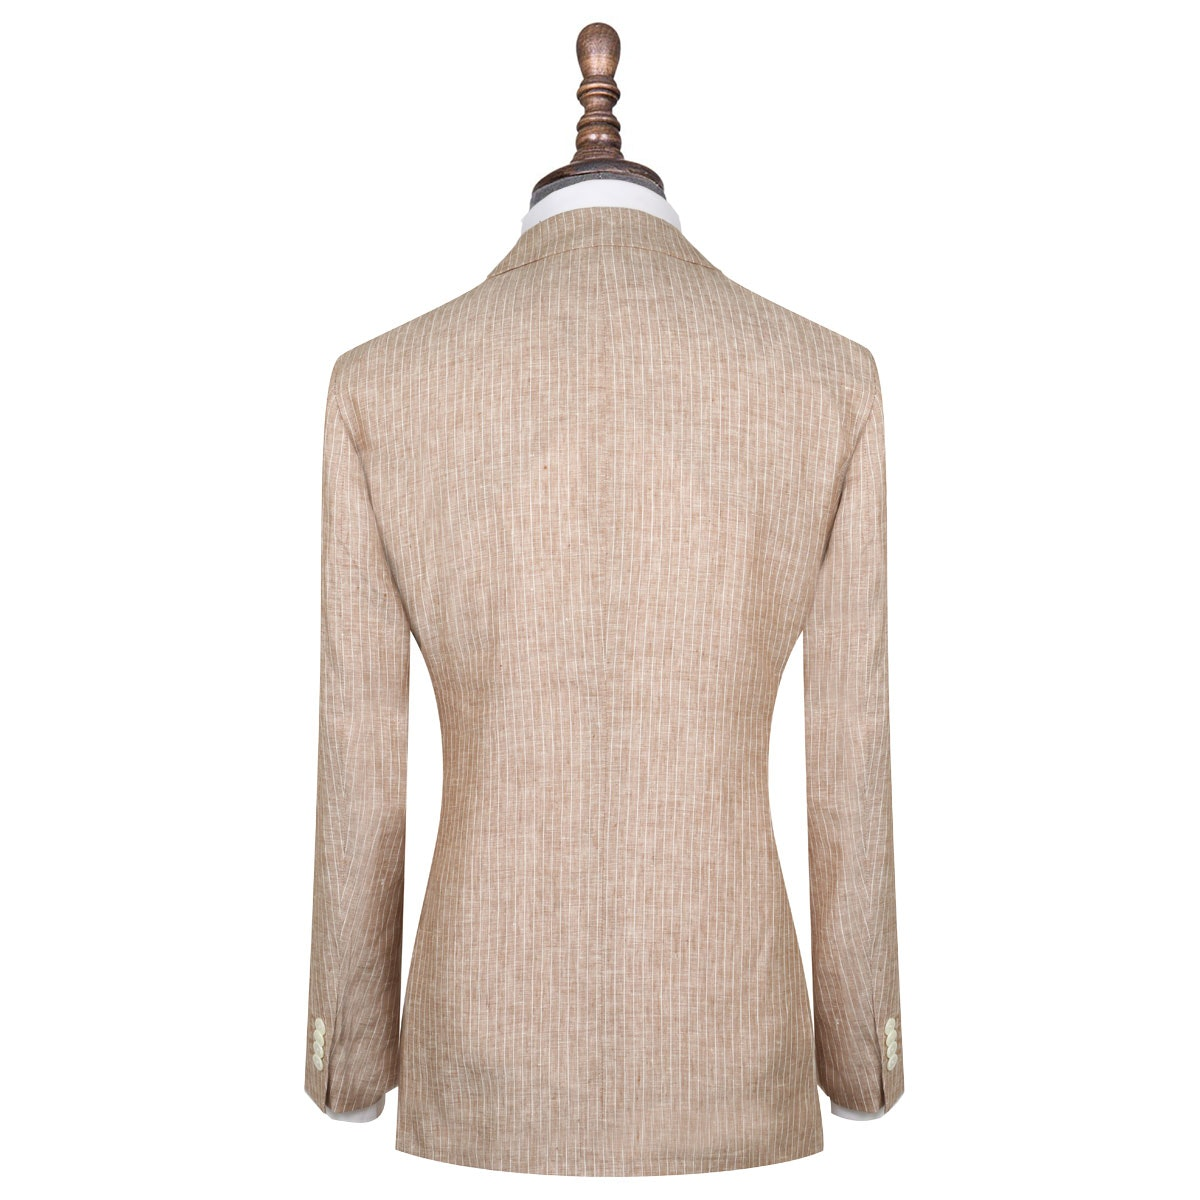 InStitchu Collection The Gatsby Beige Linen Jacket